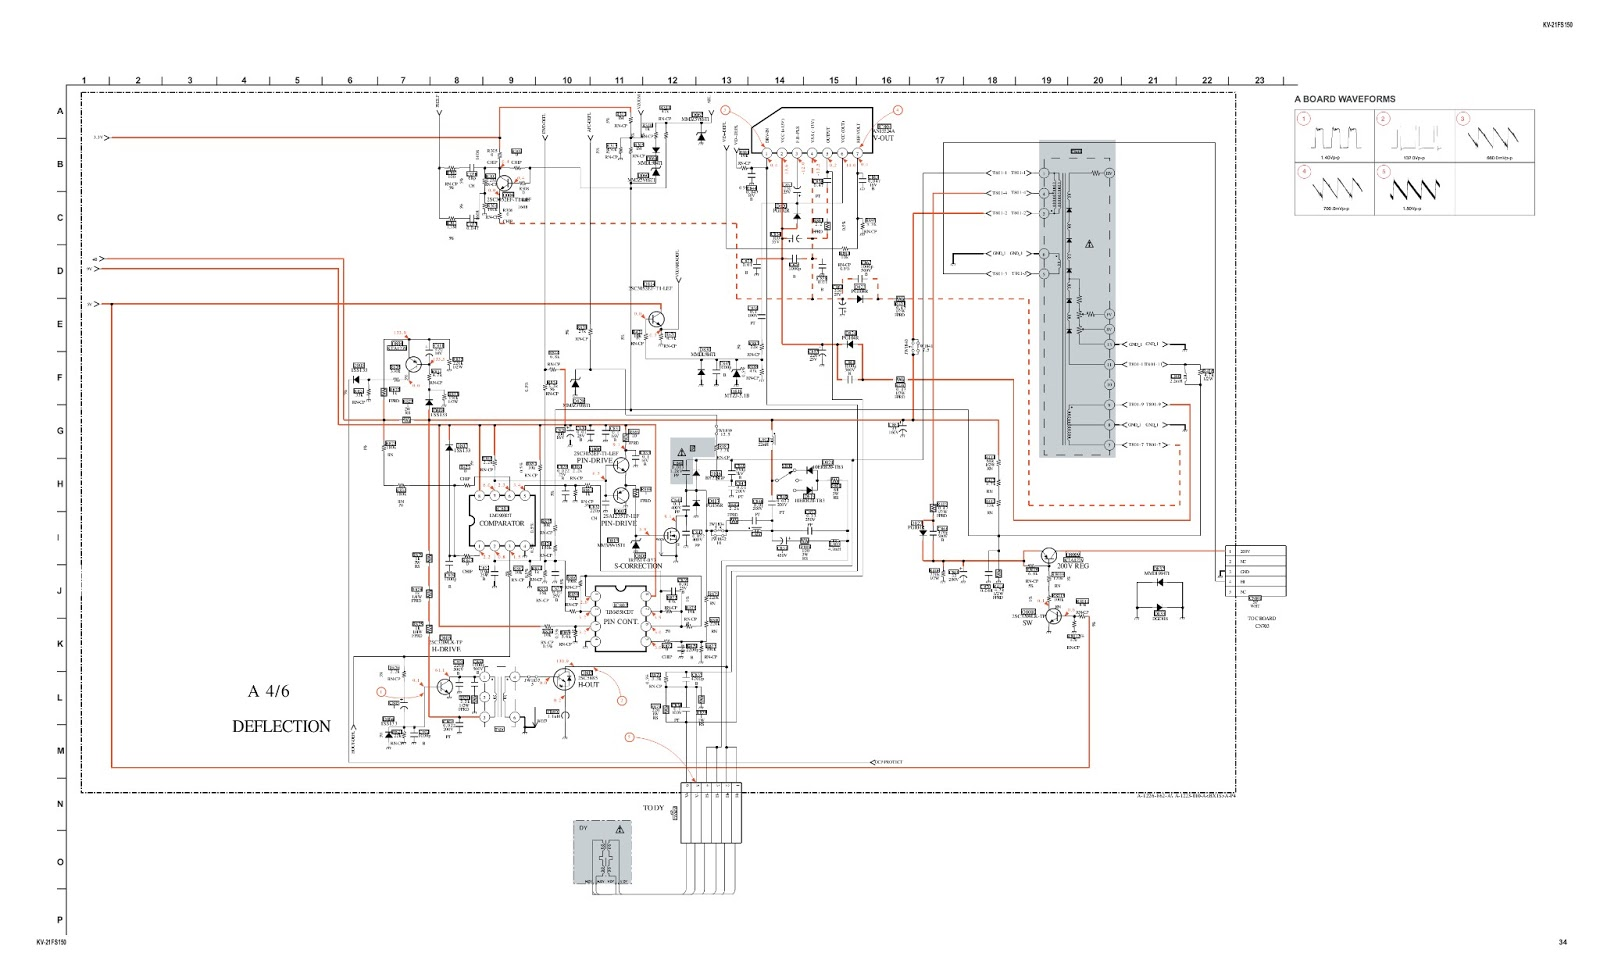 Toyota A340E S2 bit reverse oil circuit diagram likewise 3rw4073 6bb44 as well The typical application circuit of LA76810 IC together with NONINVERTING  PARATOR WITH HYSTERESIS moreover Buick air conditioning fan circuit diagram. on remote control circuit diagram